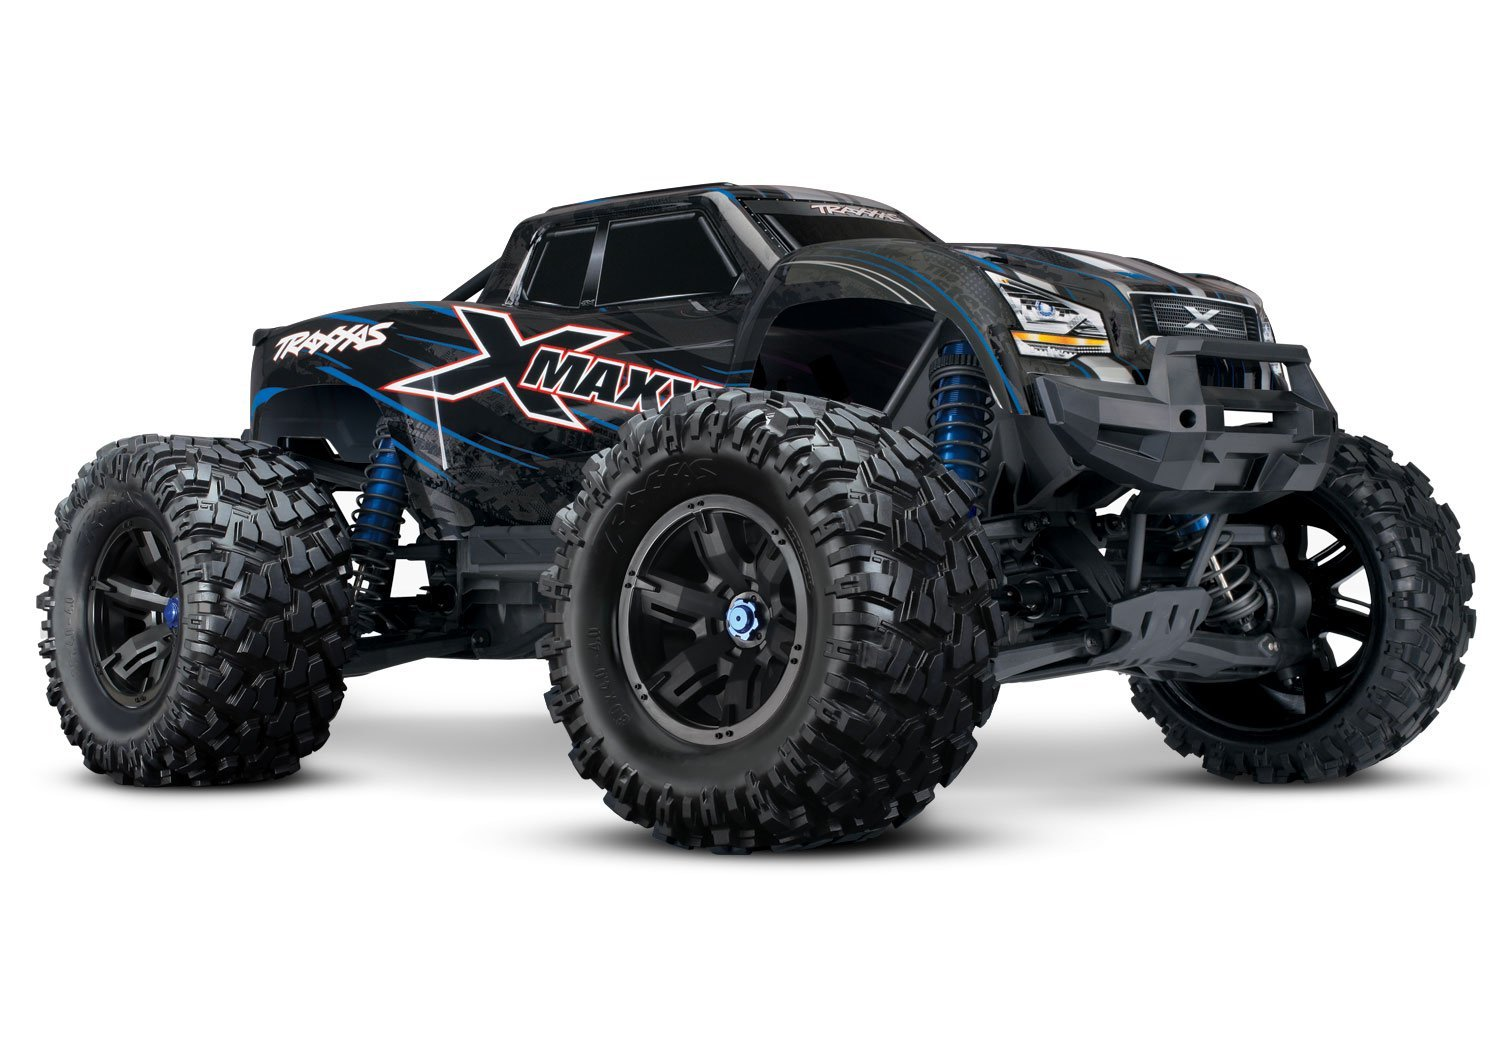 Get Extra 20$ off for Traxxas 8S X-Maxx 4WD Brushless Electric Monster RTR Truck, Blue Only 989.99$ with code  shipped US